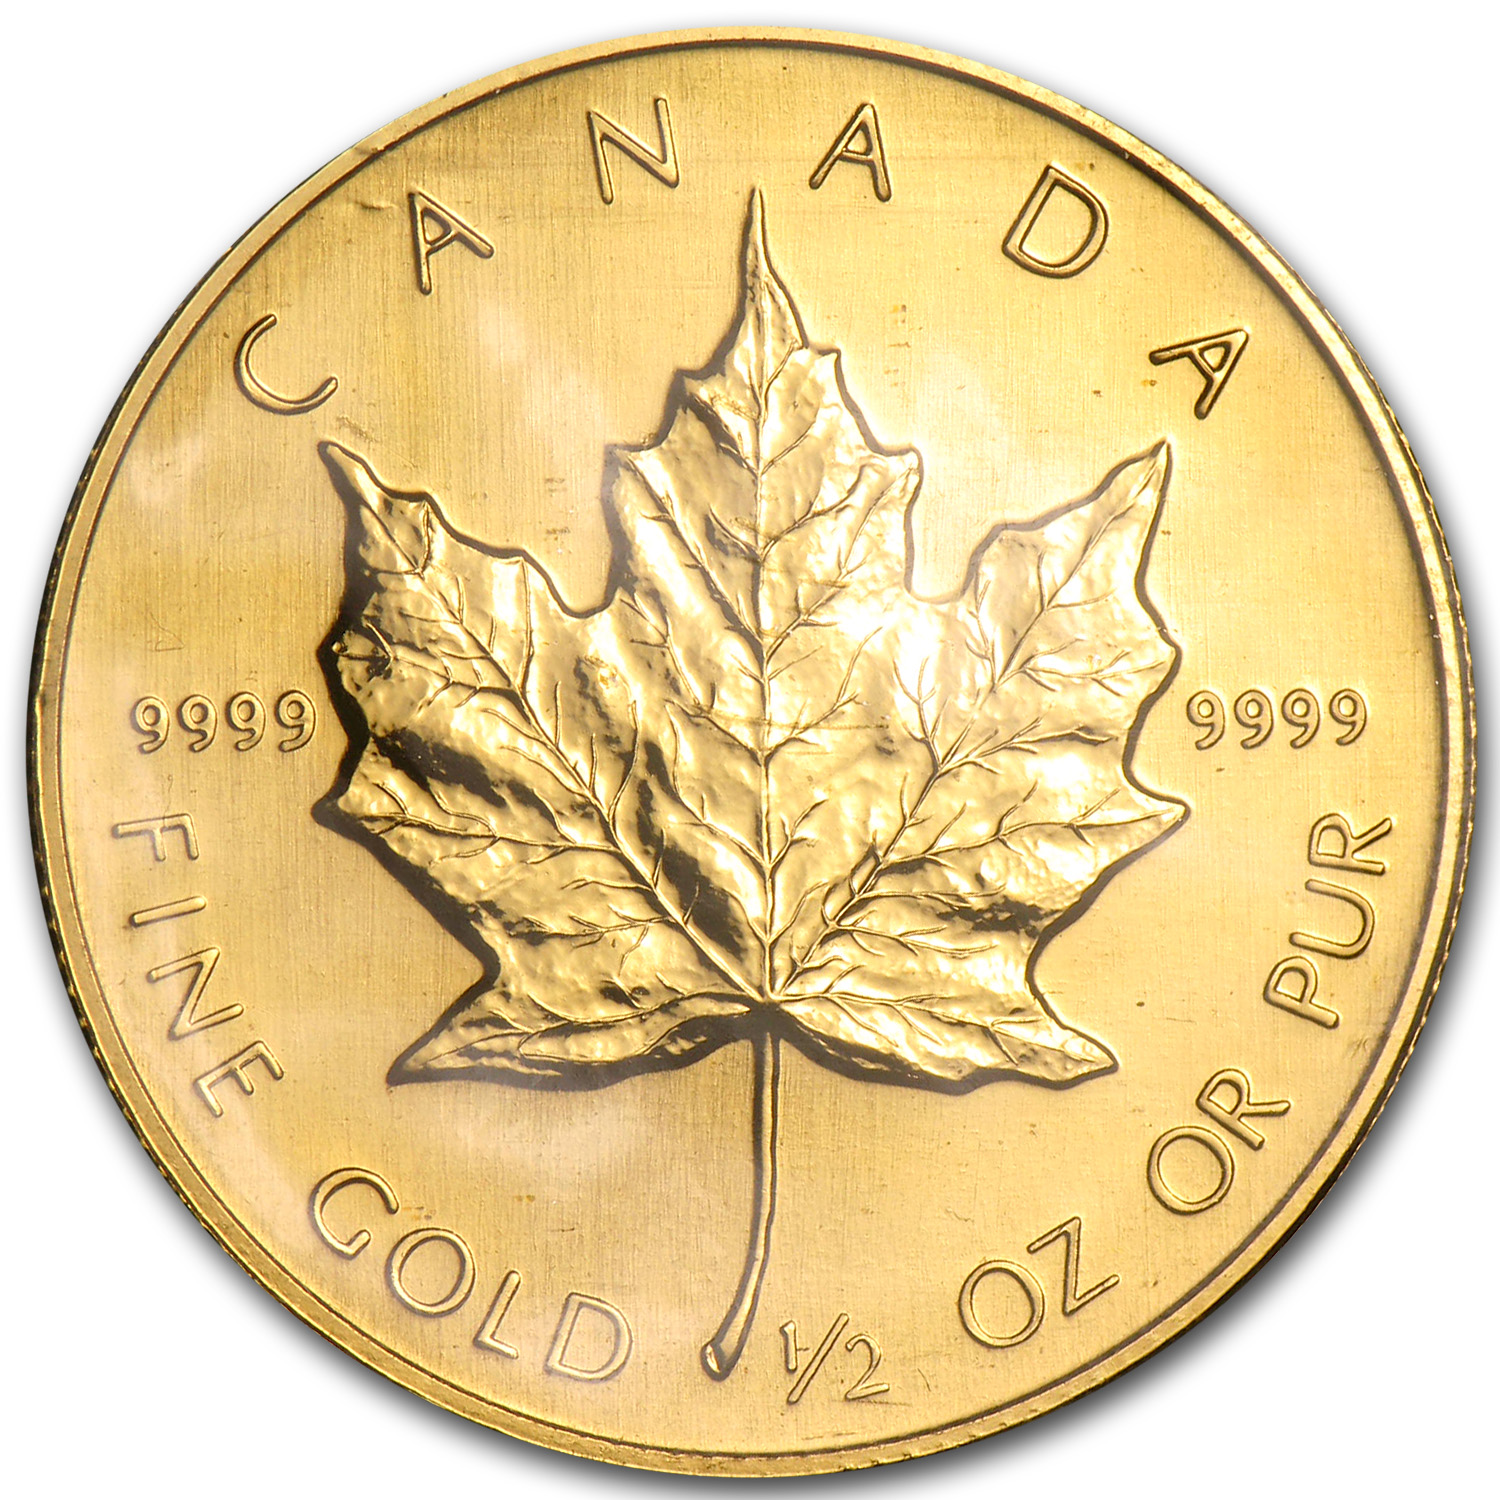 1989 Canada 1/2 oz Proof Gold Maple Leaf